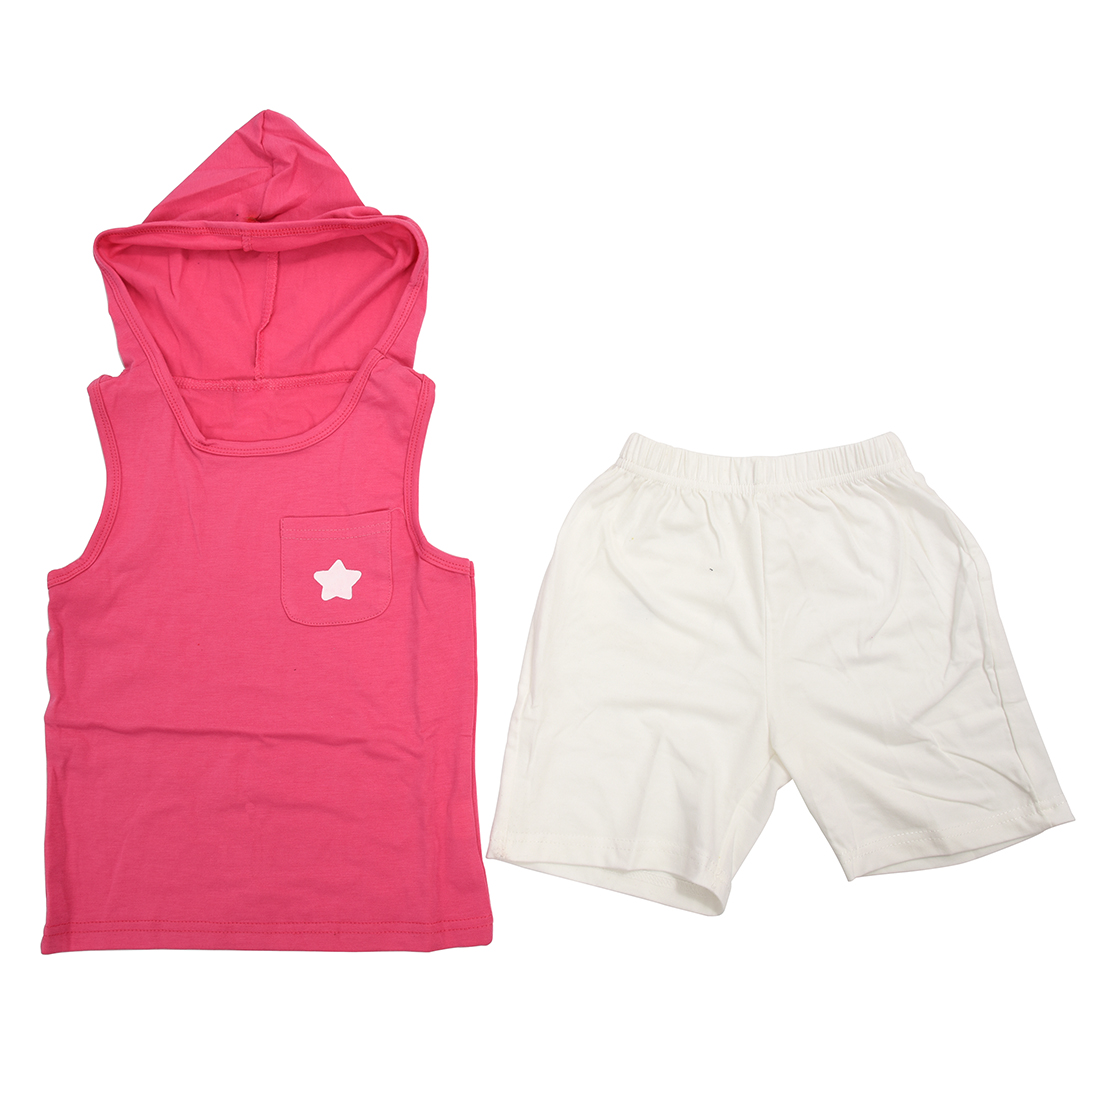 boy girl children clothing cotton summer cloth baby kids clothing suit set vest + short hooded sports sets star pink 140cm